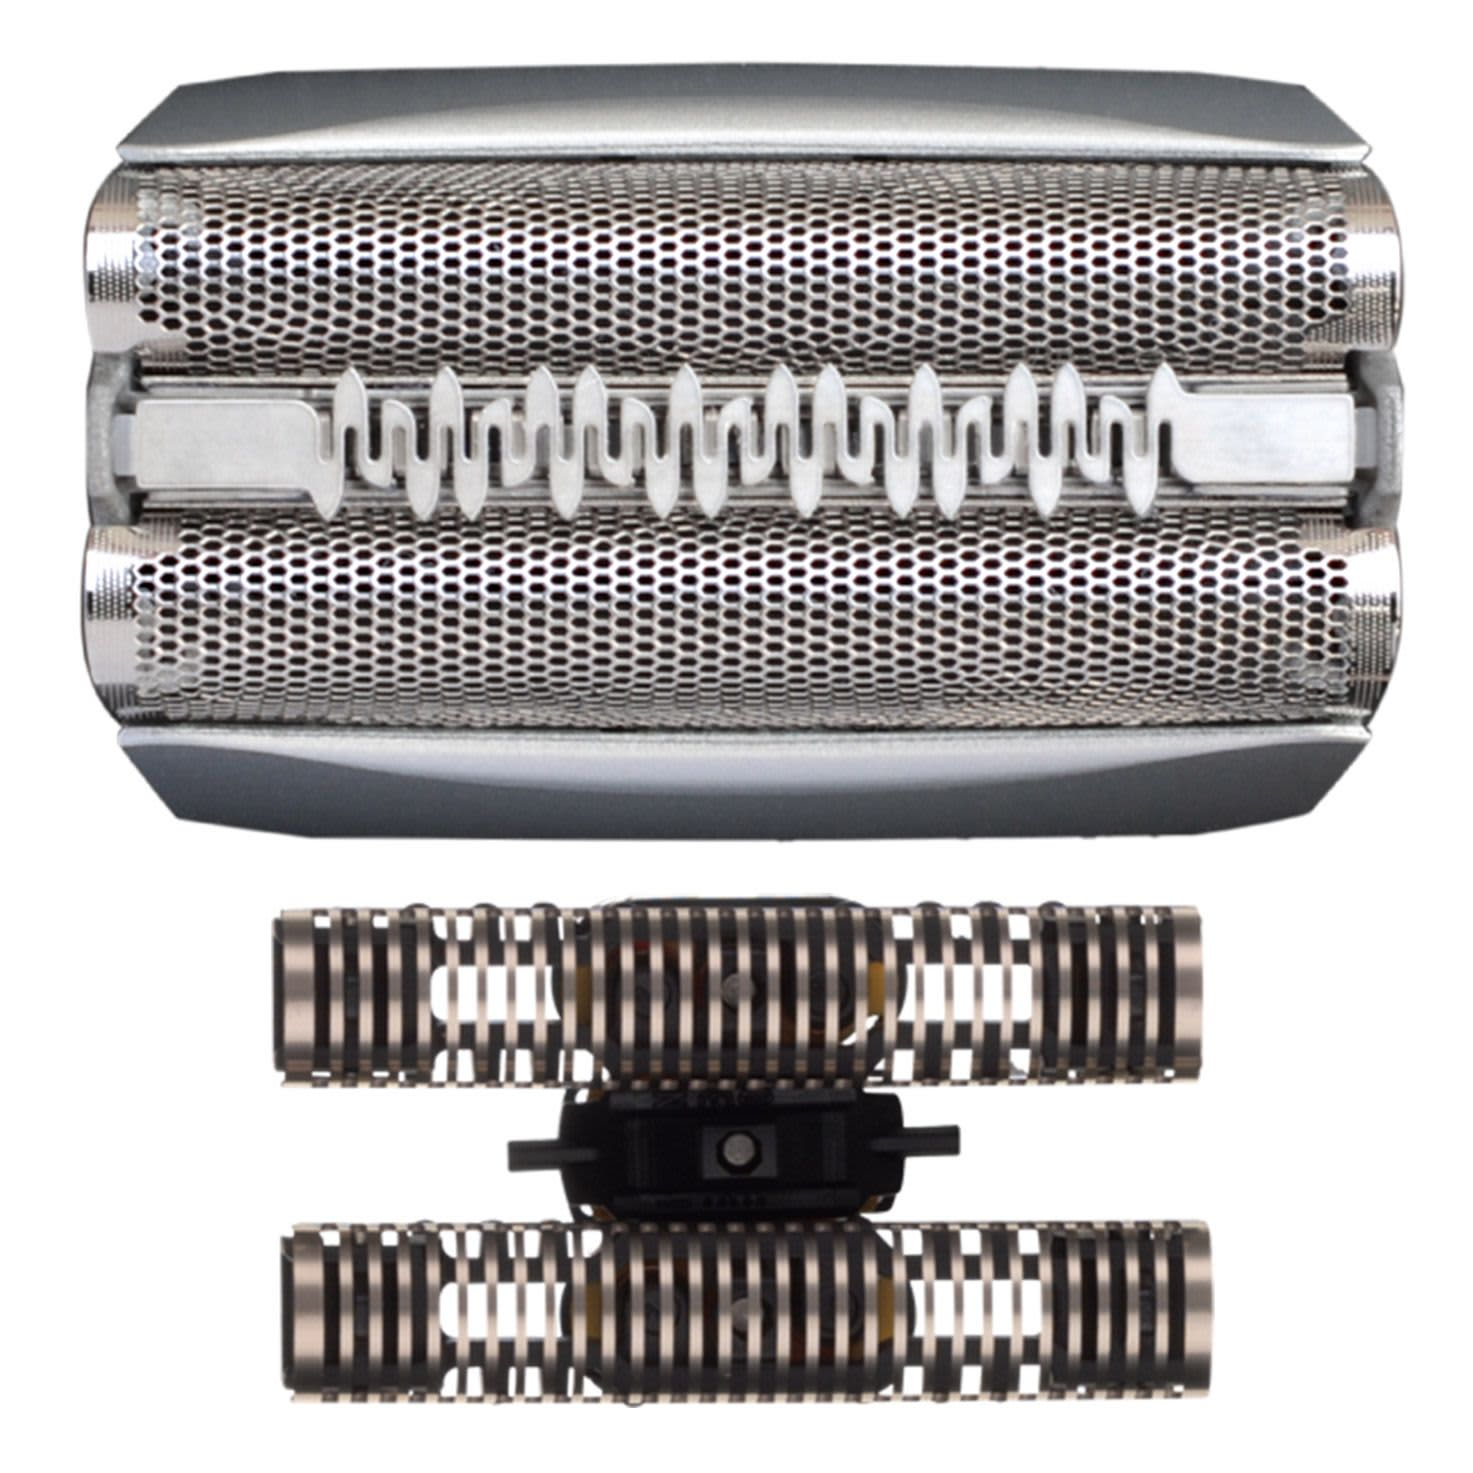 Braun Series 5 Replacement Shaver Head Cassette, 51S, Silver.  [For Series 5 (older generation), ContourPro, 360°, Complete, Activator]